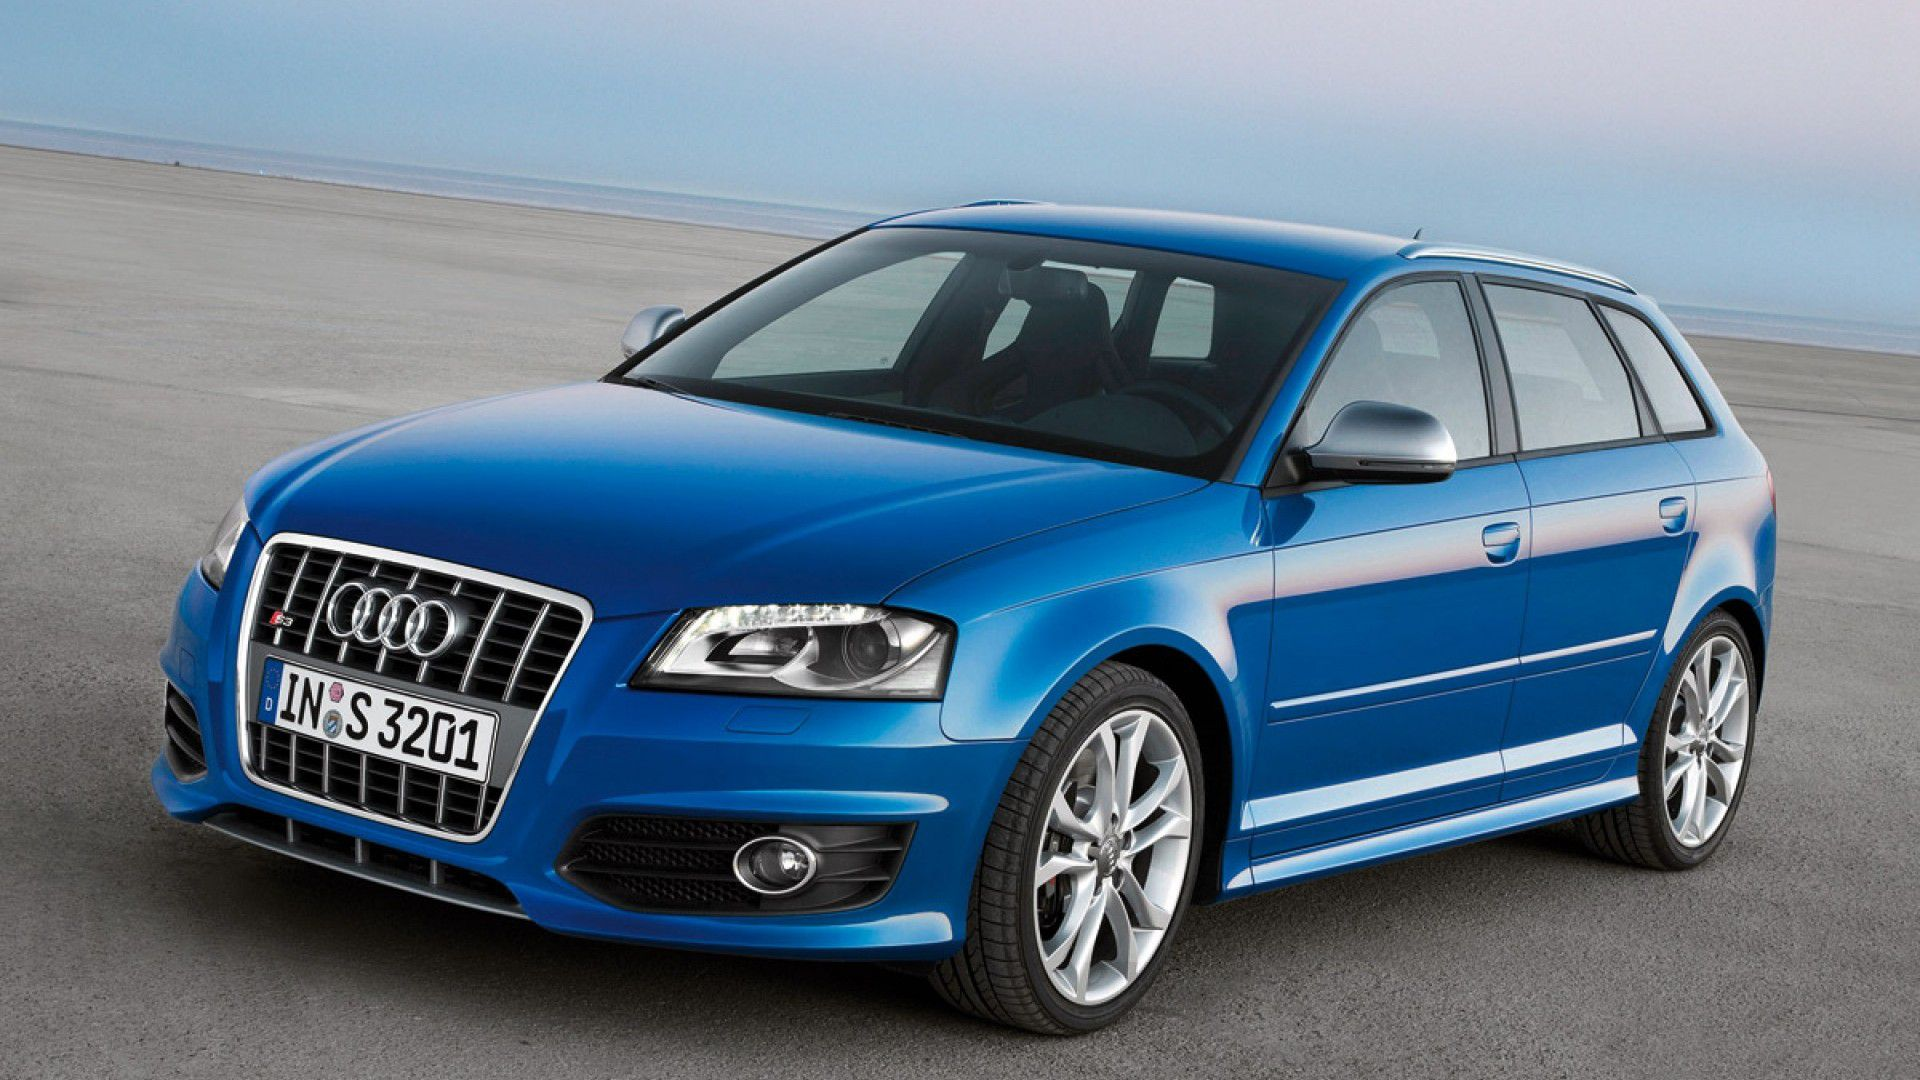 Audi S3 (1999 to 2003)